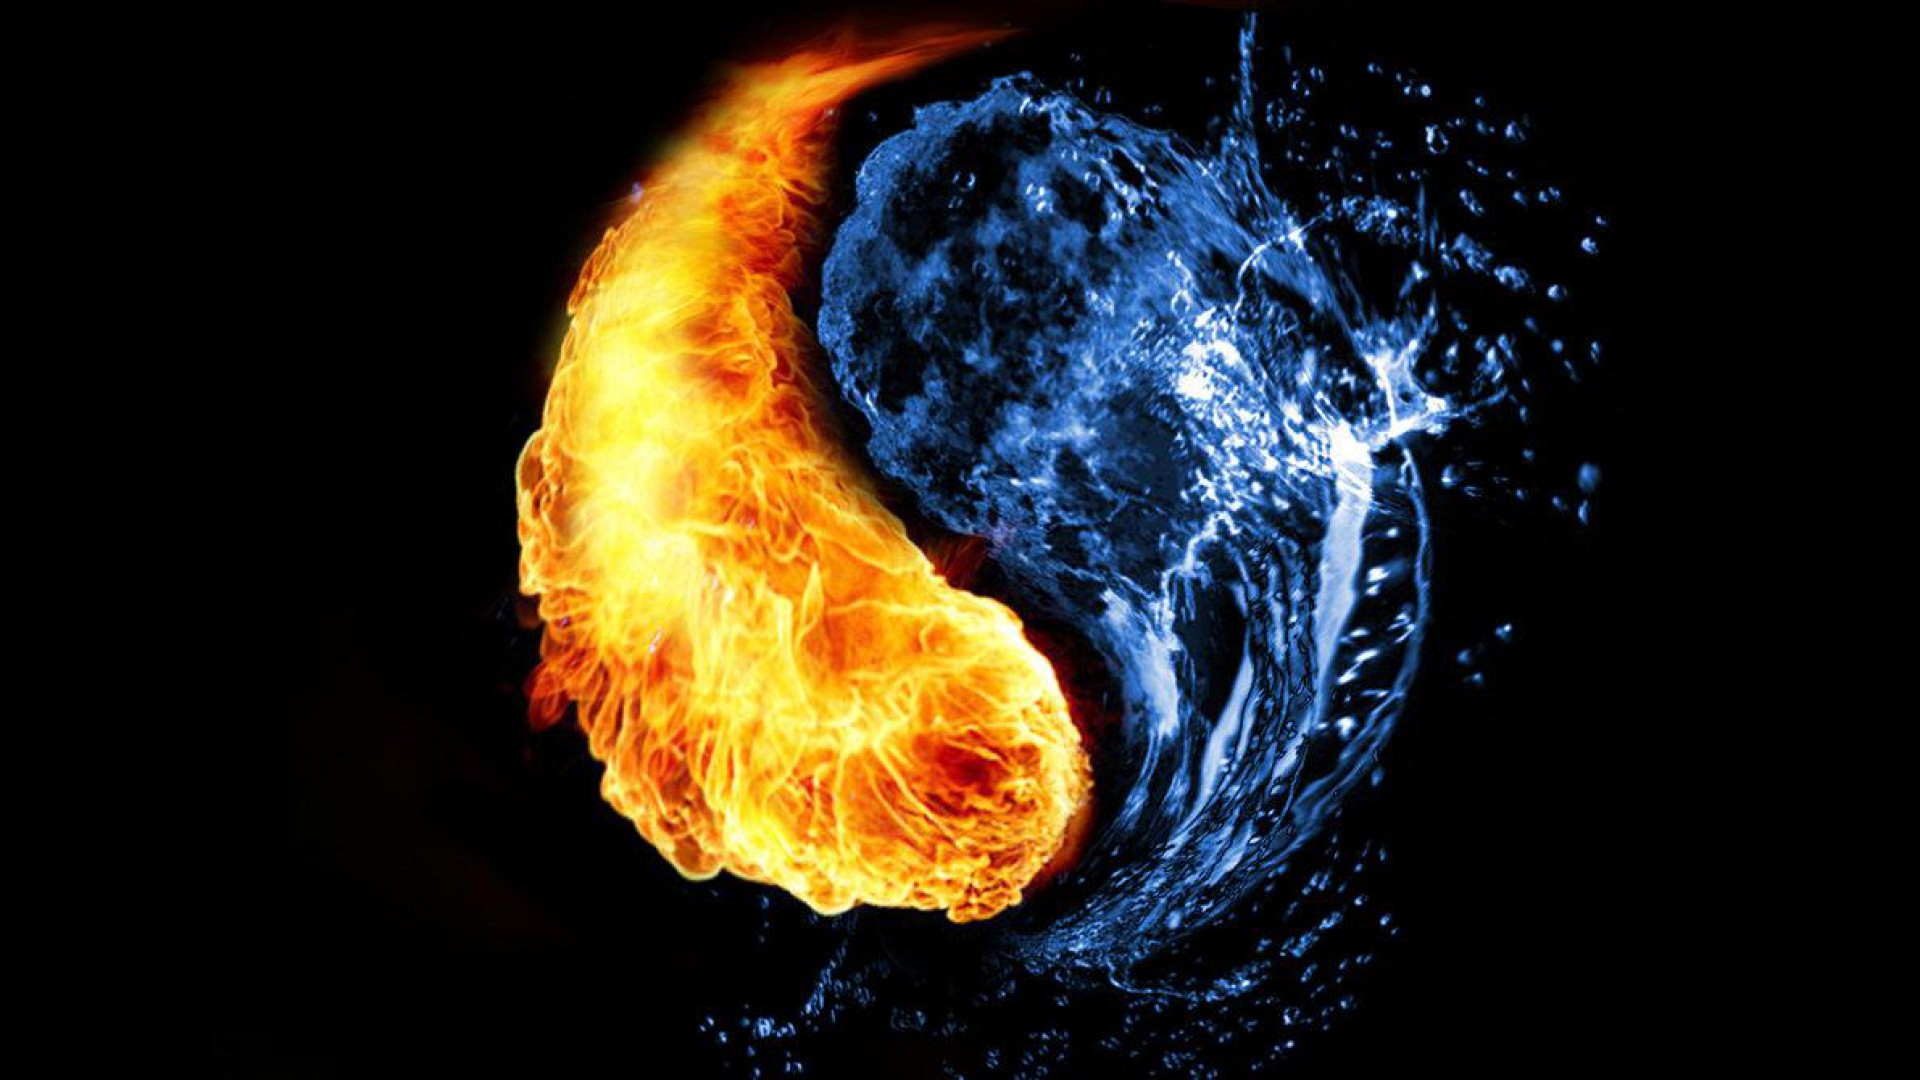 Cool-Fire-And-Water-wallpaper-wpc9003756